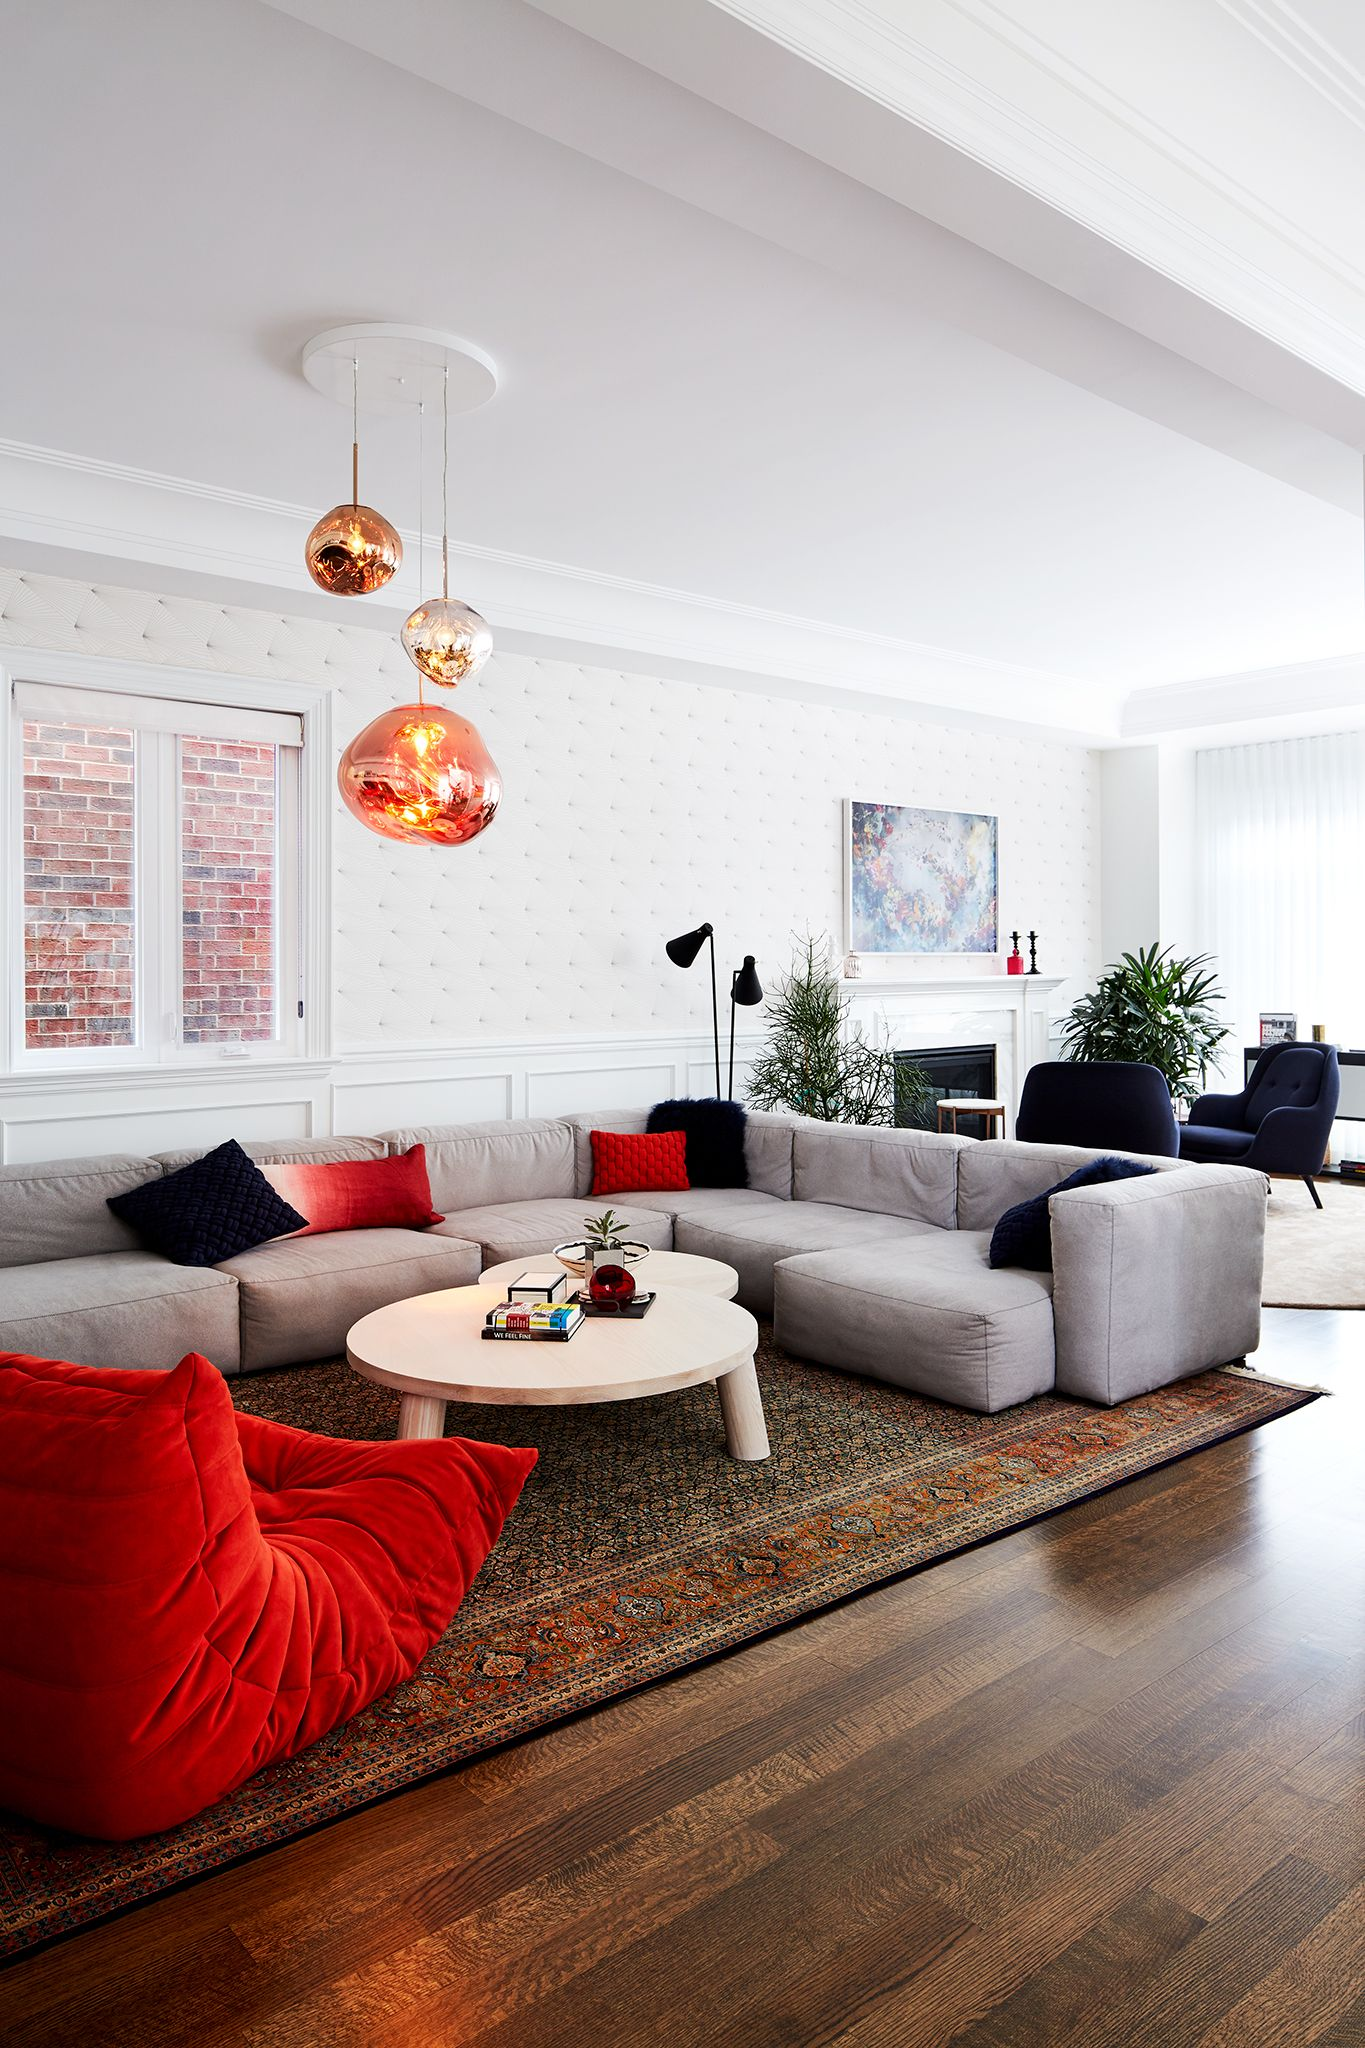 Tom Dixon Melt Lights Mag Sofa Ligne Rosset Chair Hanglamp Woonkamer Decoratie Design Woonkamers